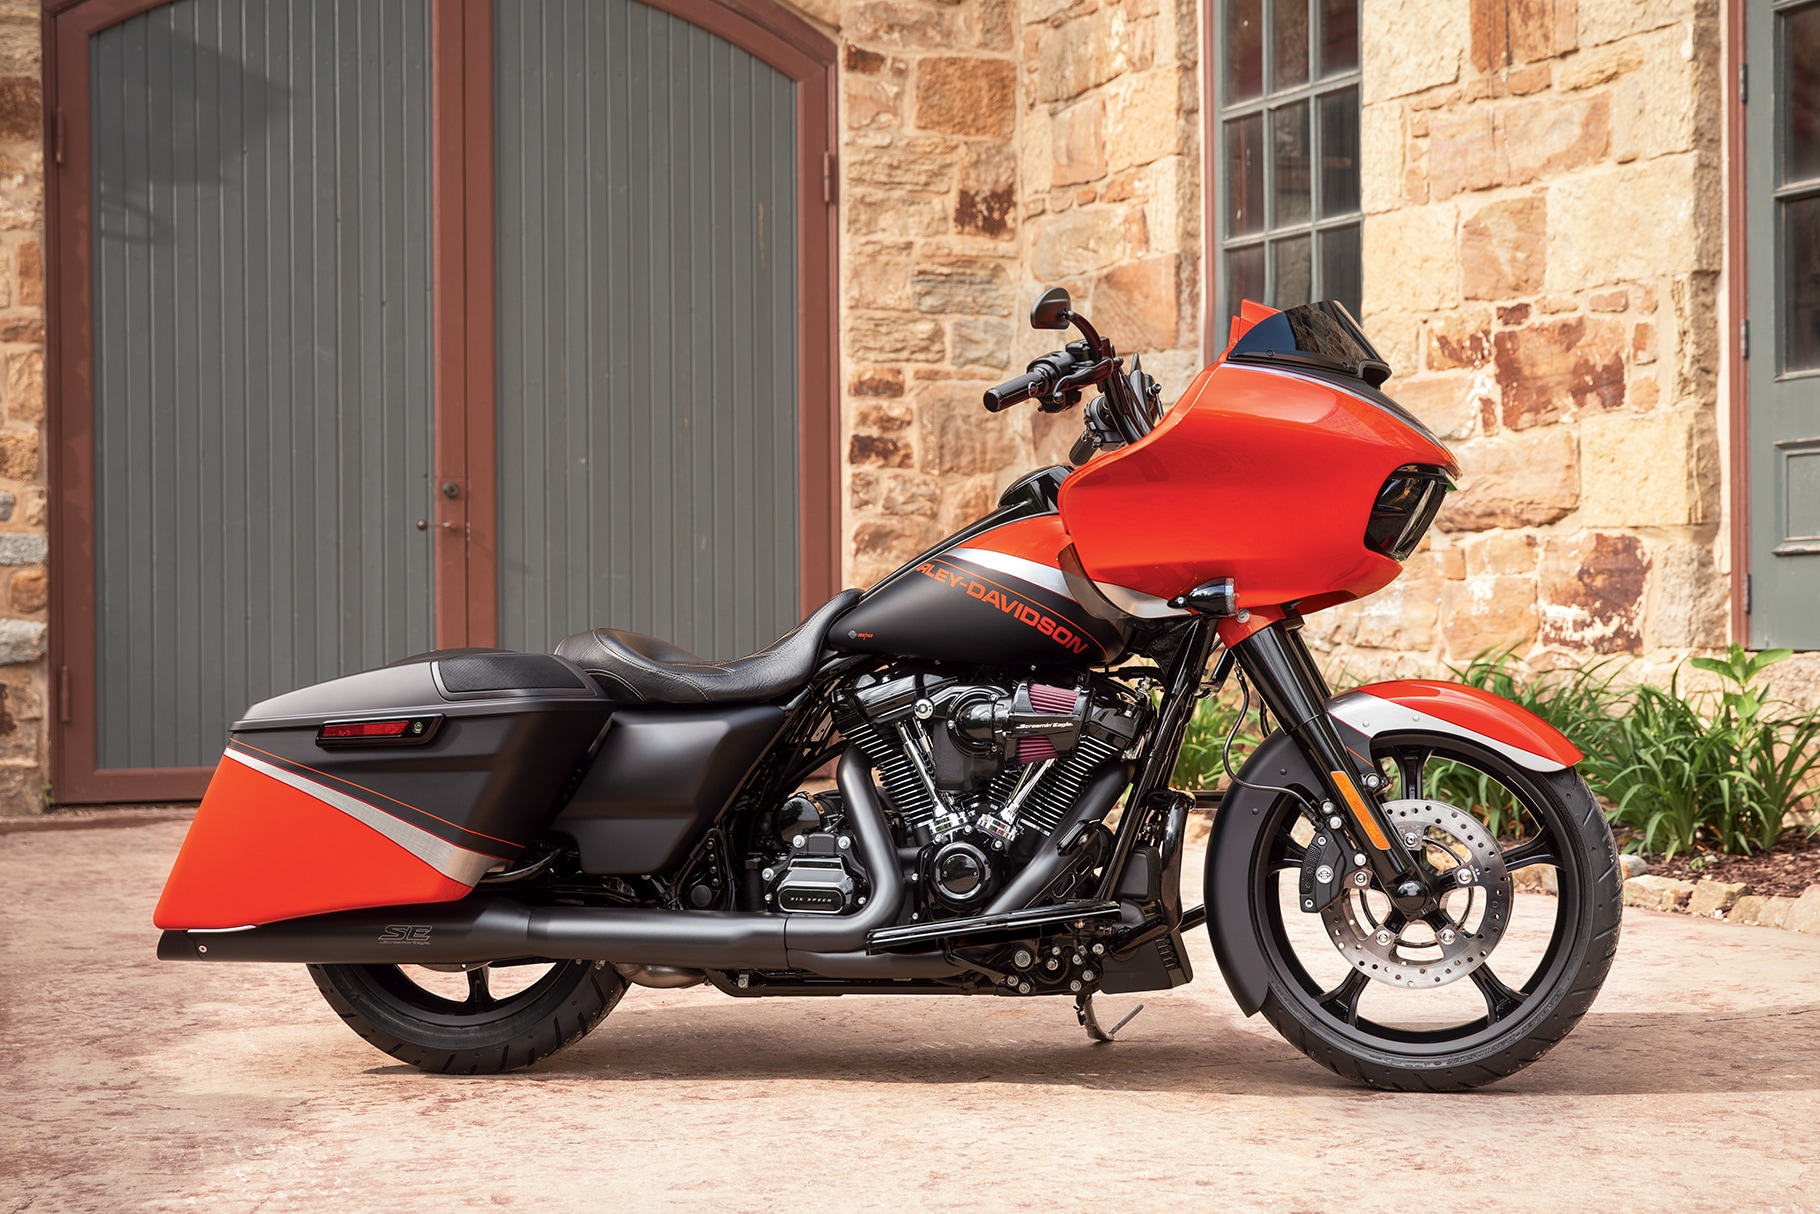 2019 Touring H-D Motorcycle Milwaukee-Eight Twin Engine